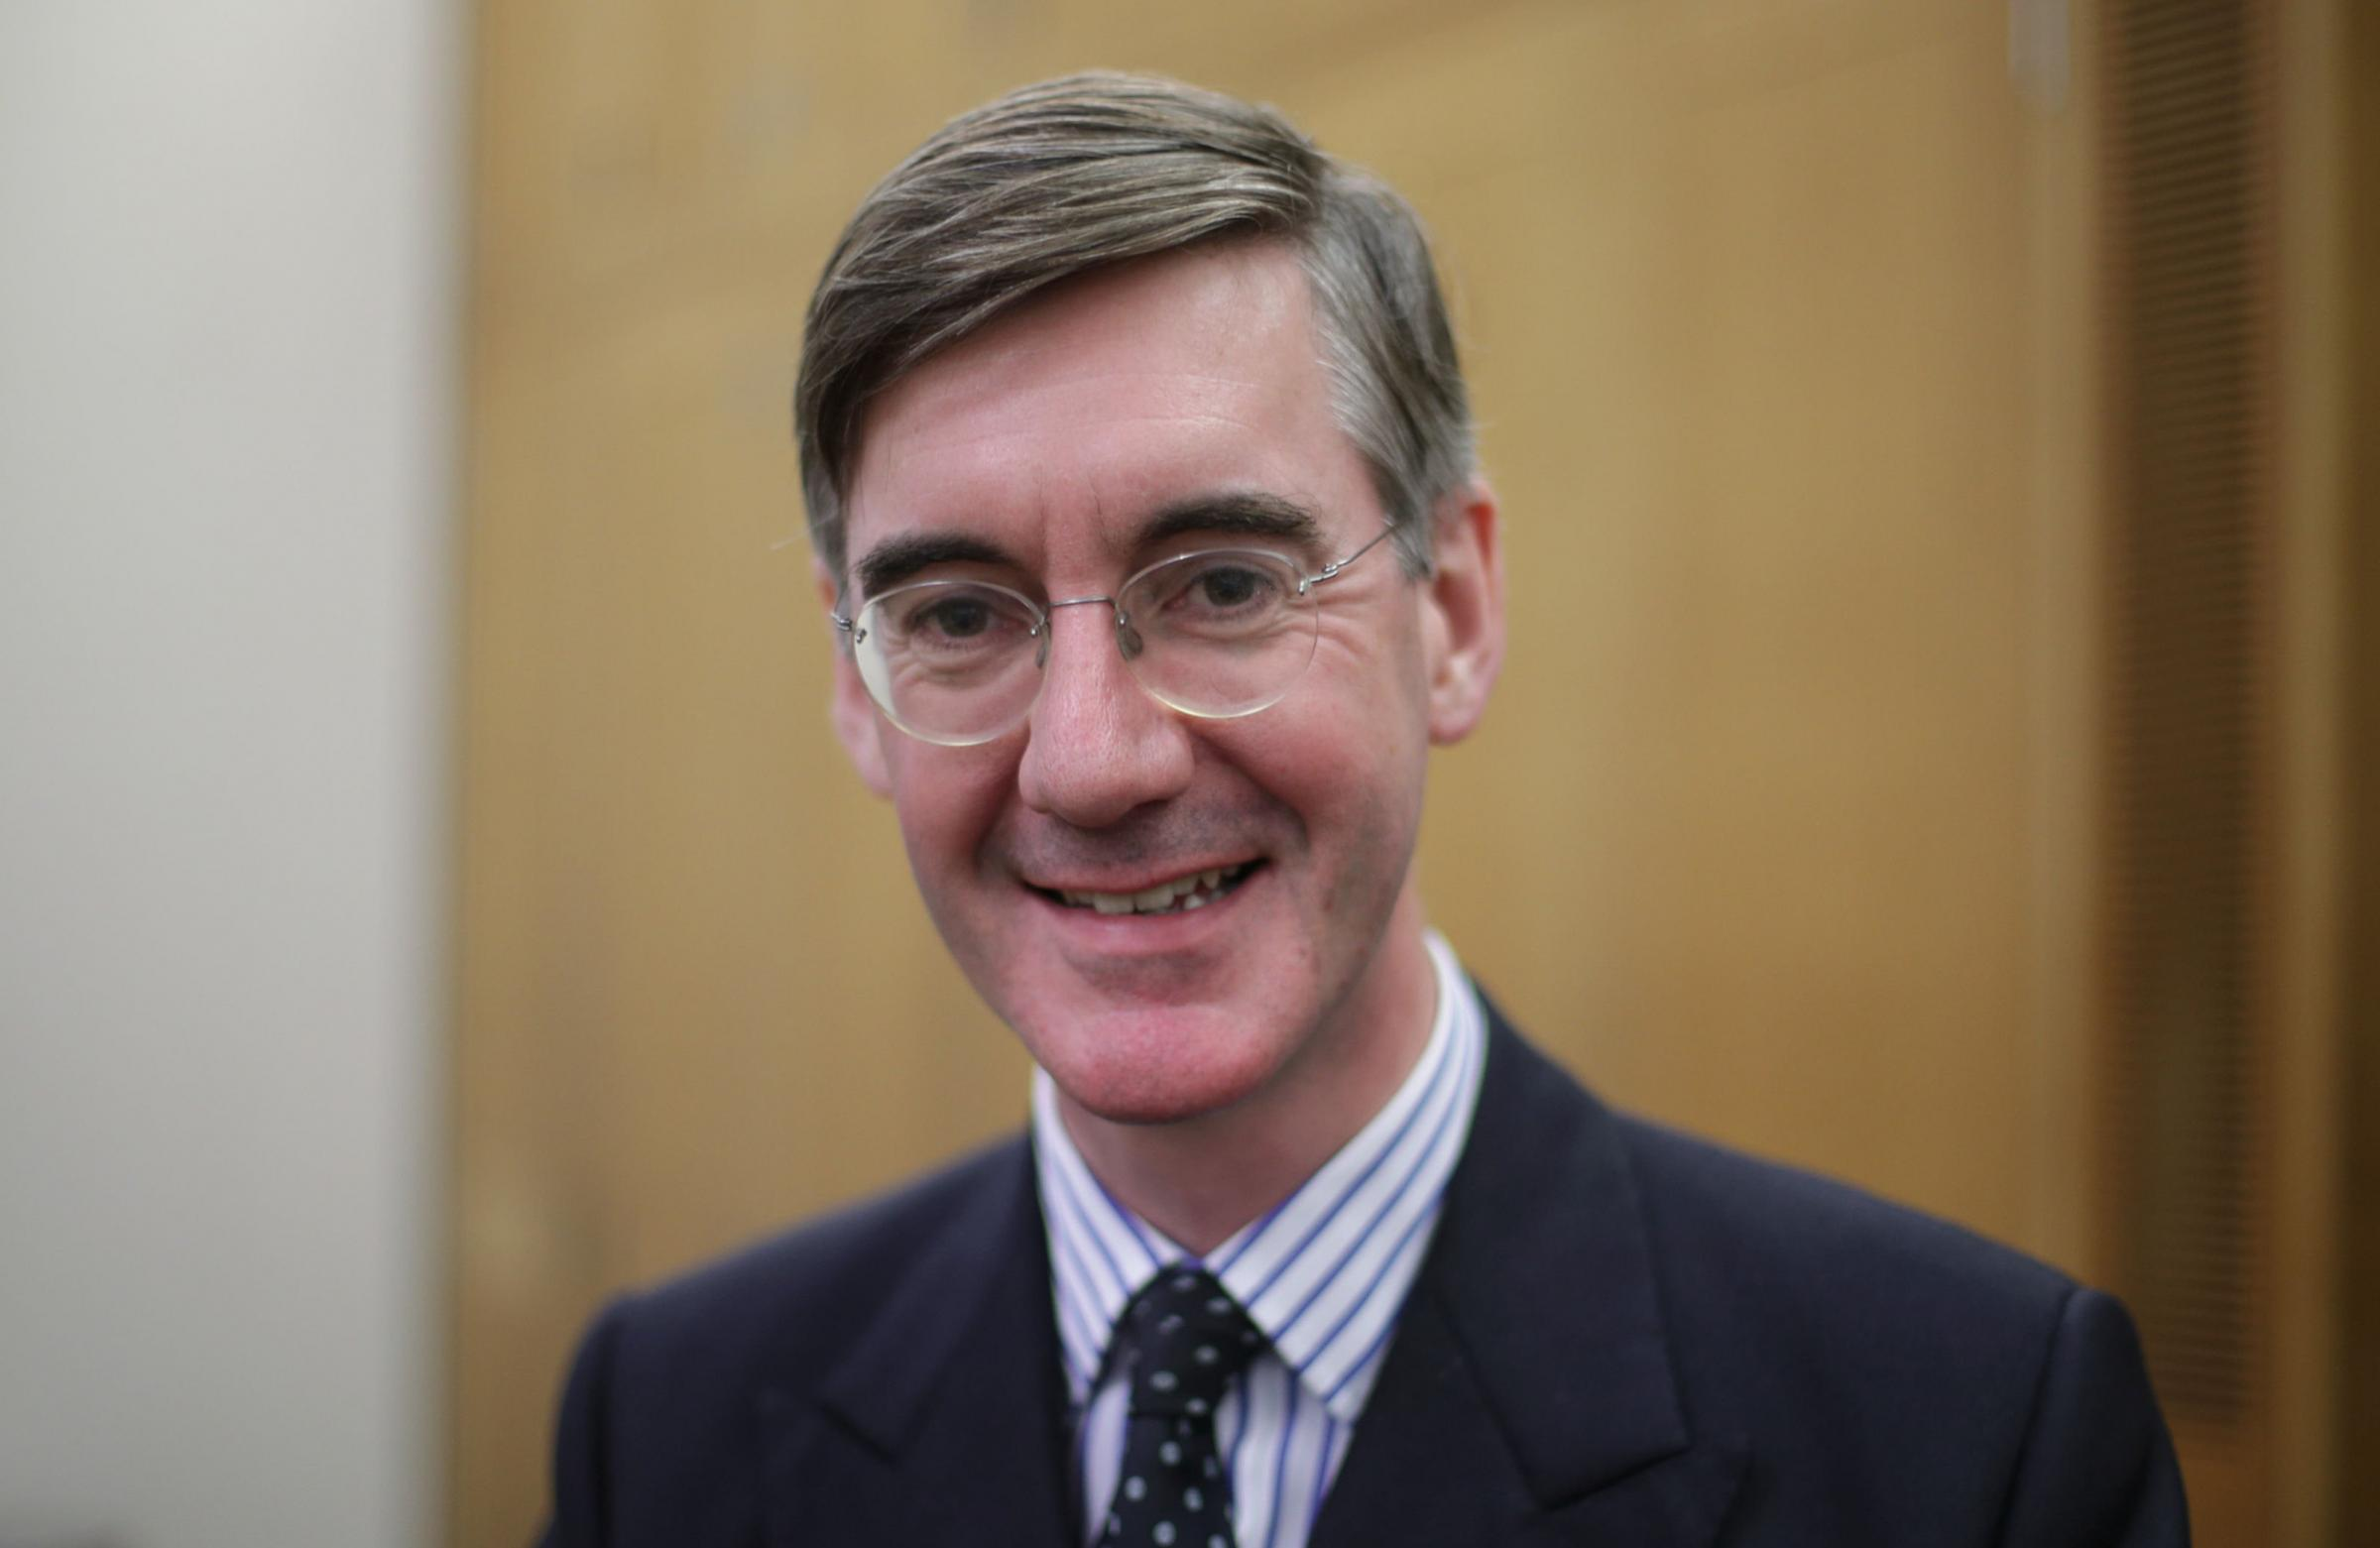 Jacob Rees-Mogg is against abortion even in cases where a pregnancy was the result of rape